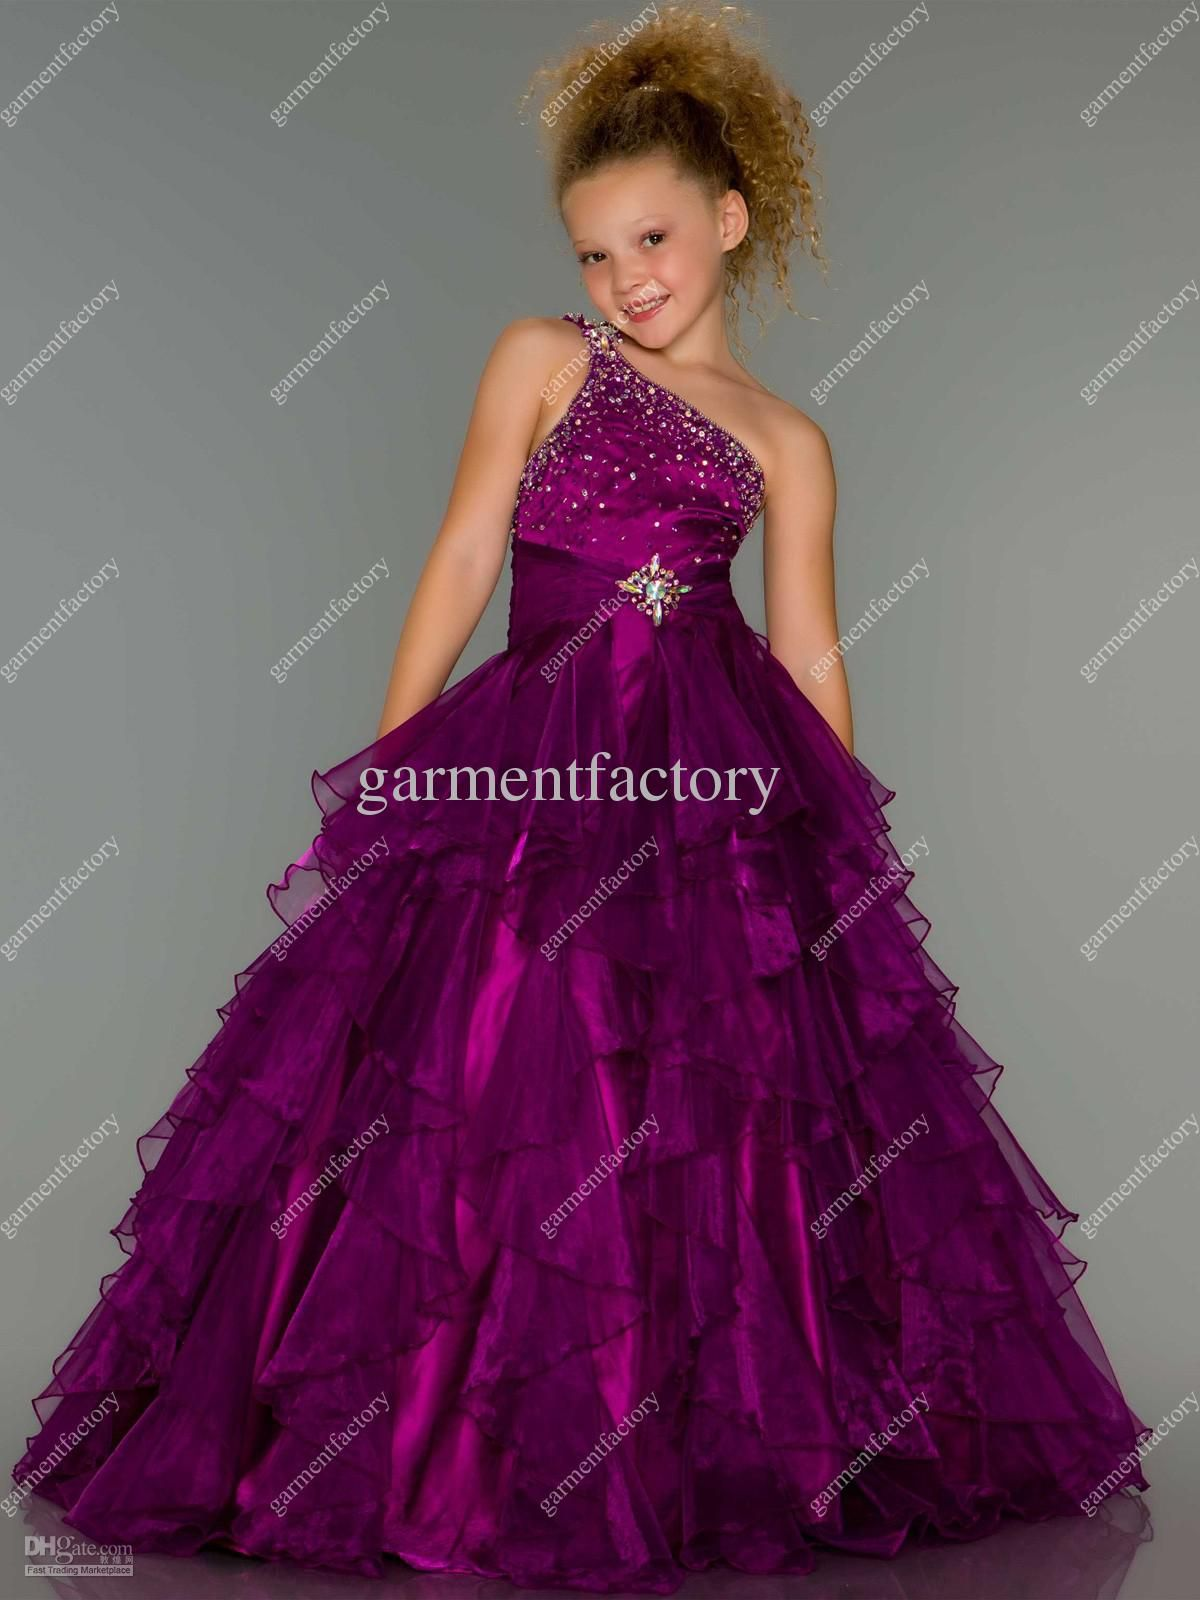 24 best ideas about Pageant dresses for girls on Pinterest | Girls ...